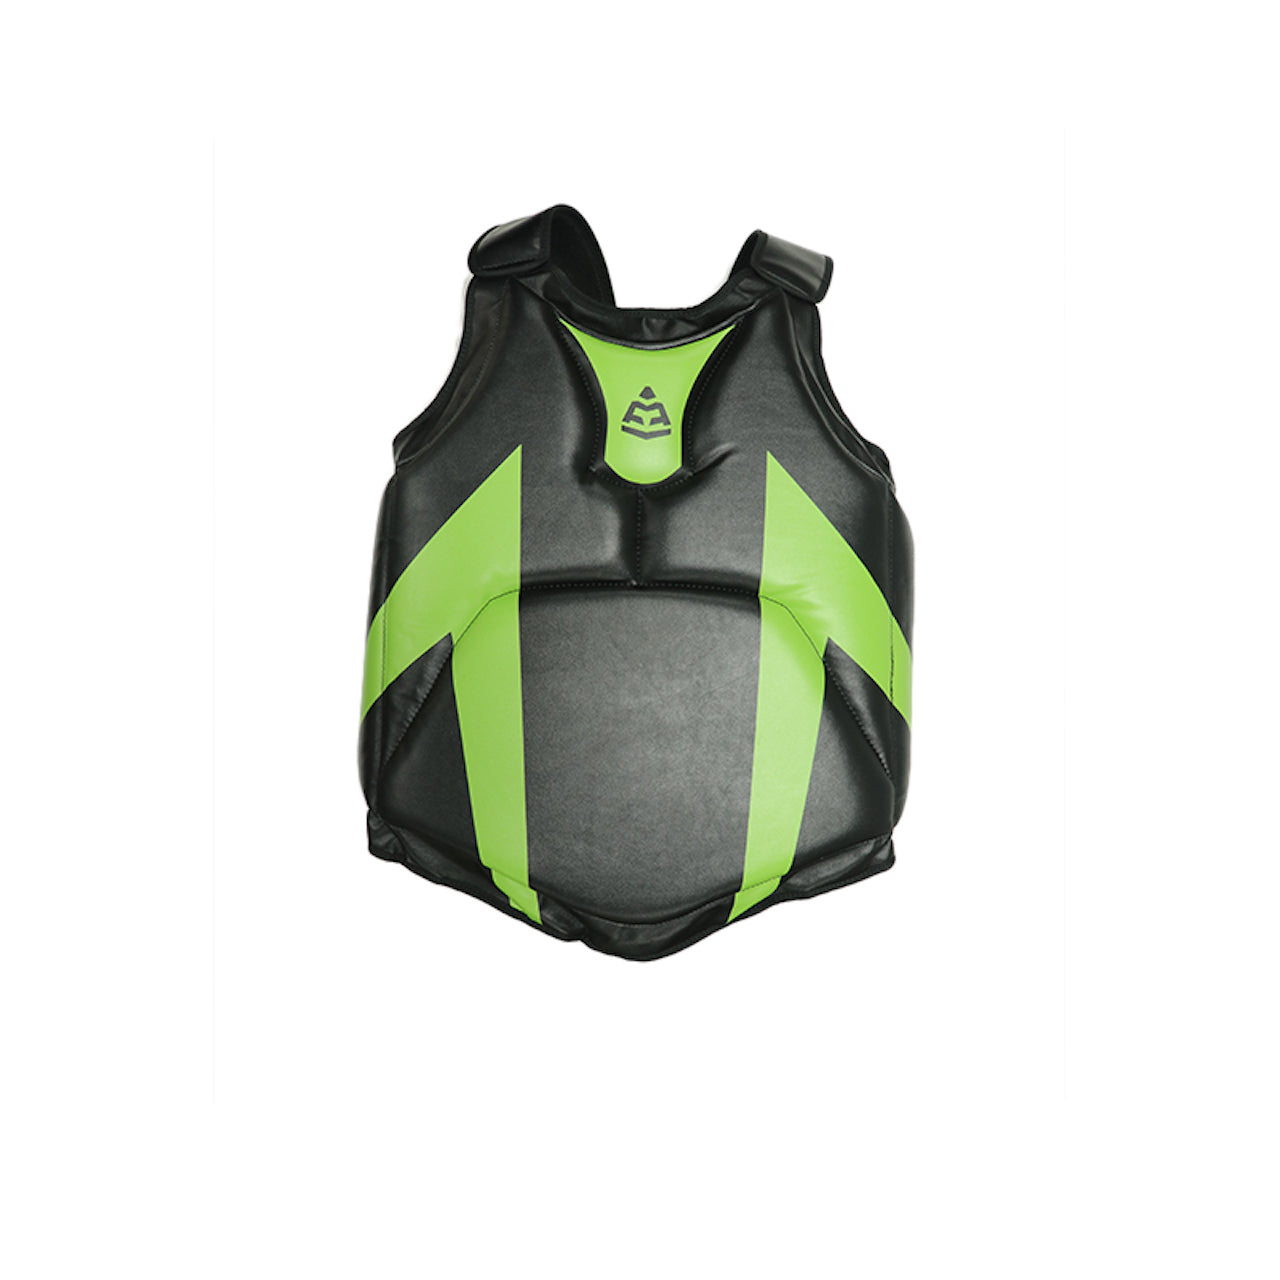 FIGHTBRO Sparring Chest Shield